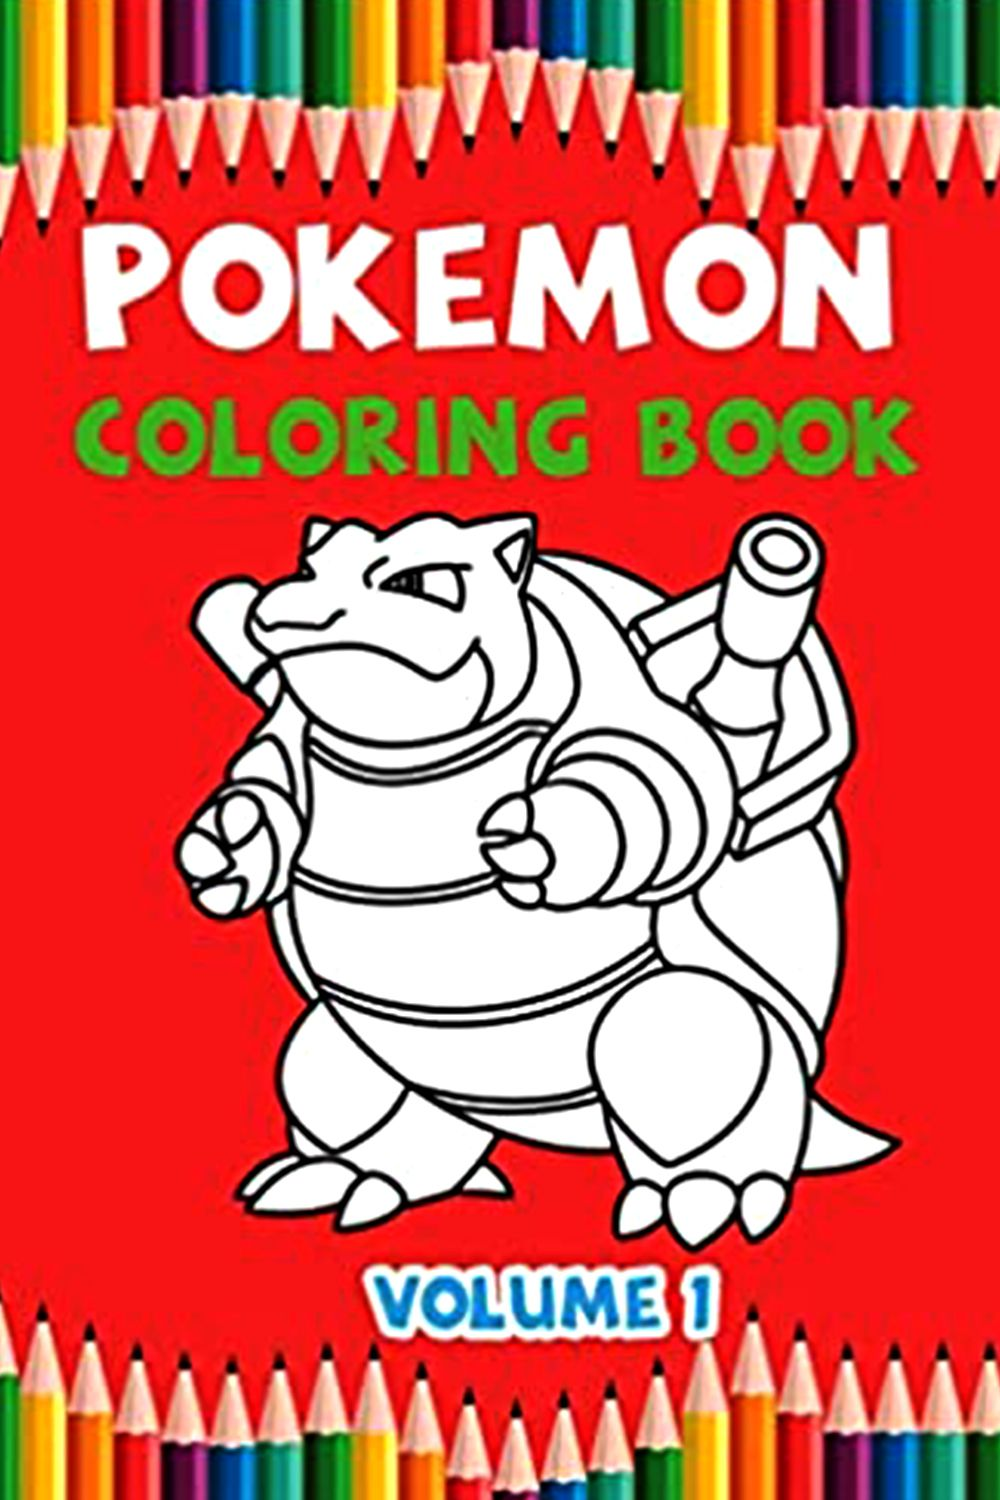 Pokemon Coloring Book Valume 1 Pokemon Activity Book For Kids Coloring Dot To Dot Mazes Coloring Books Kids Activity Books Coloring Book Set